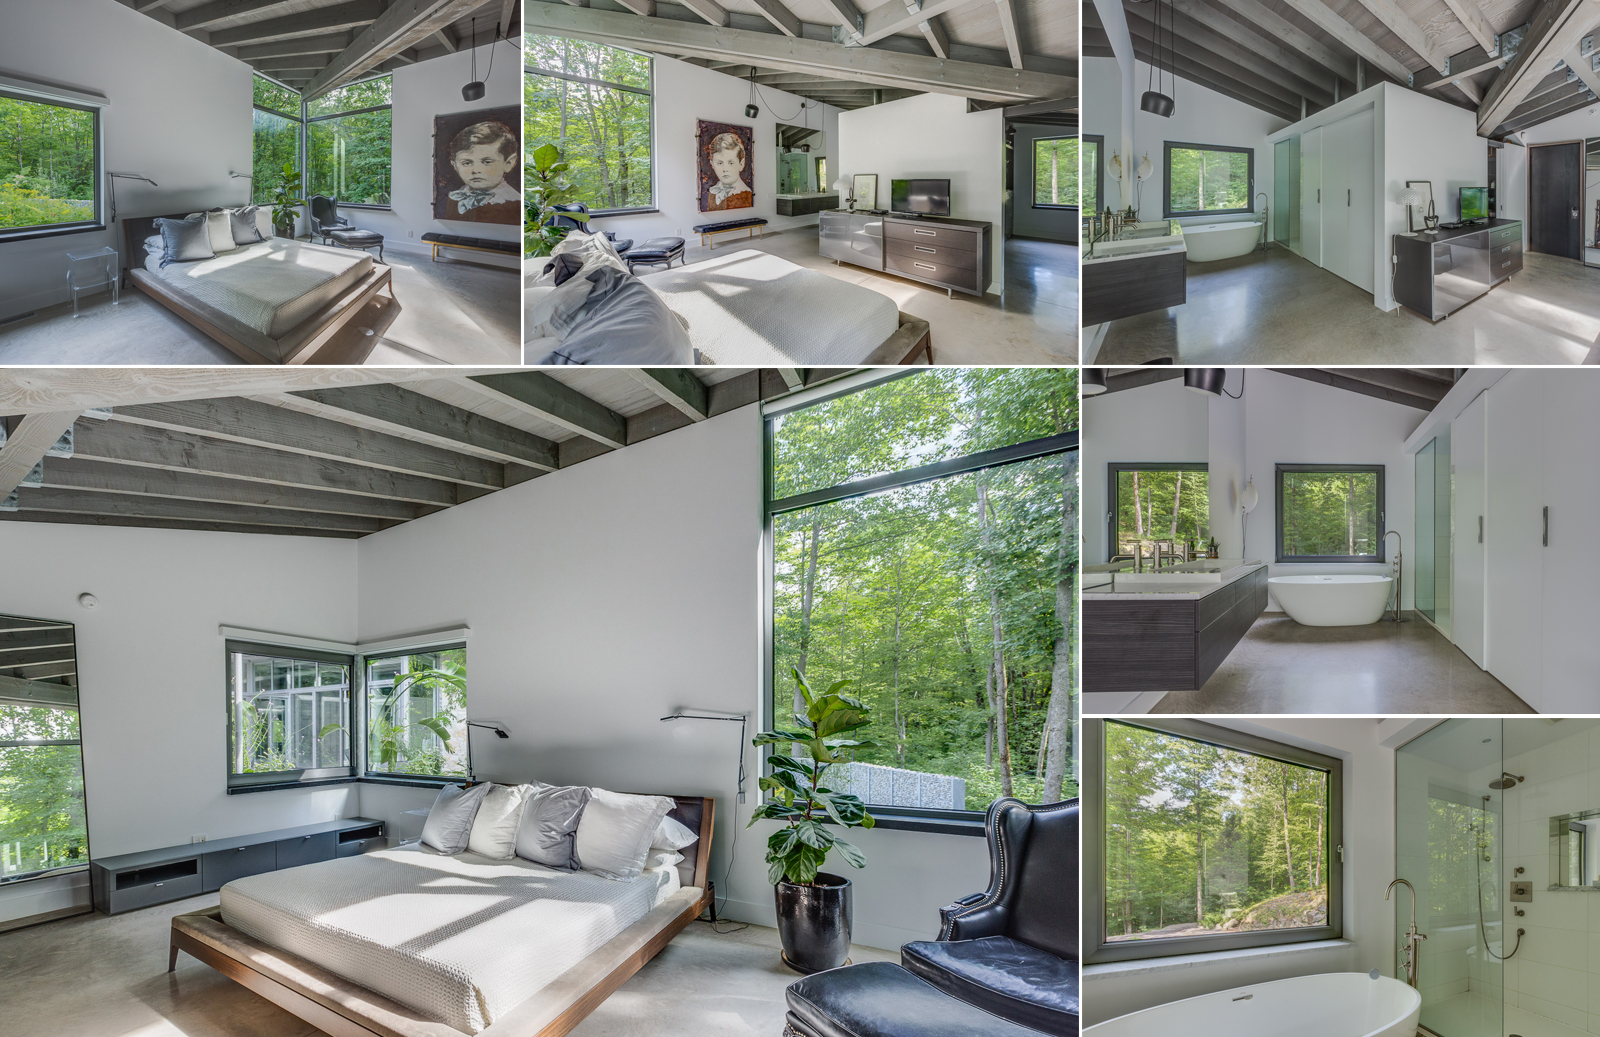 La maison sur le Roc | Équipe Williams - St-Laurent | Immobilier de prestige